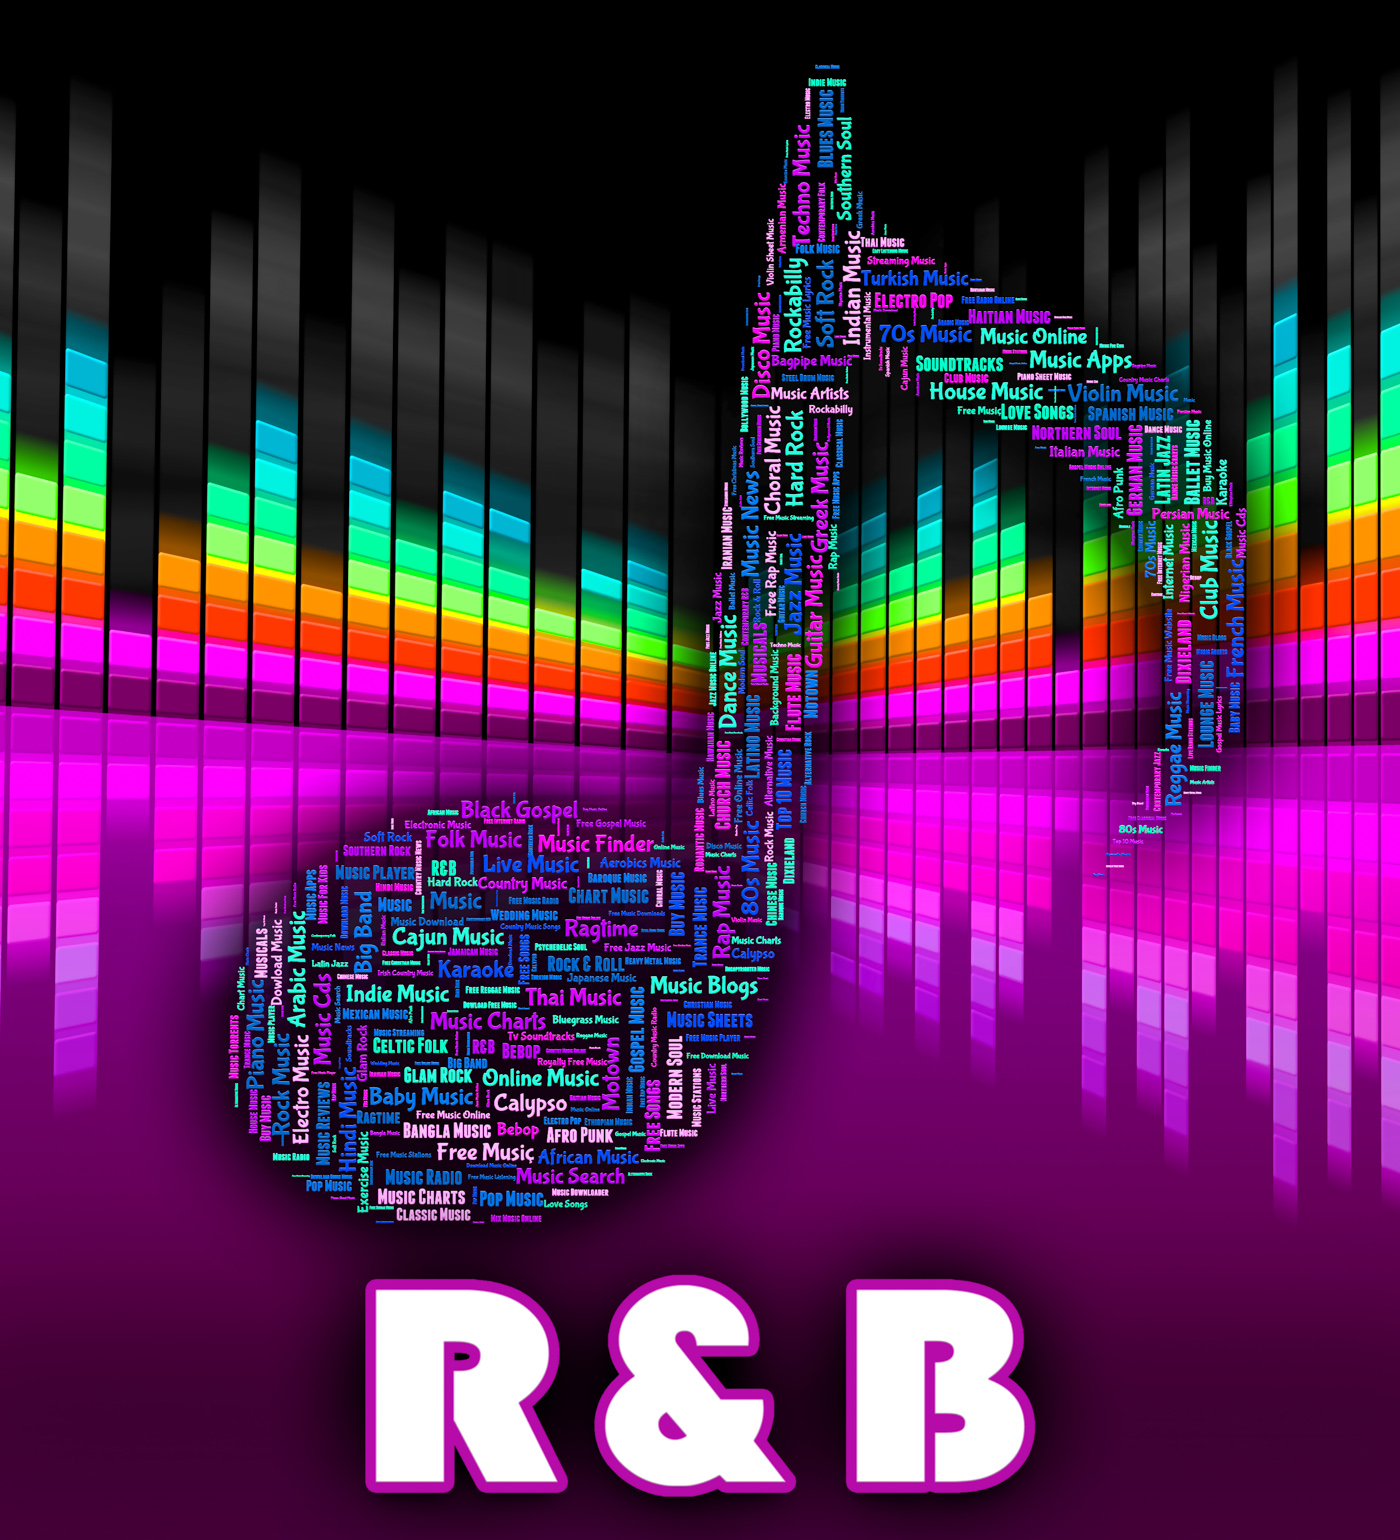 websites to download rnb music for free